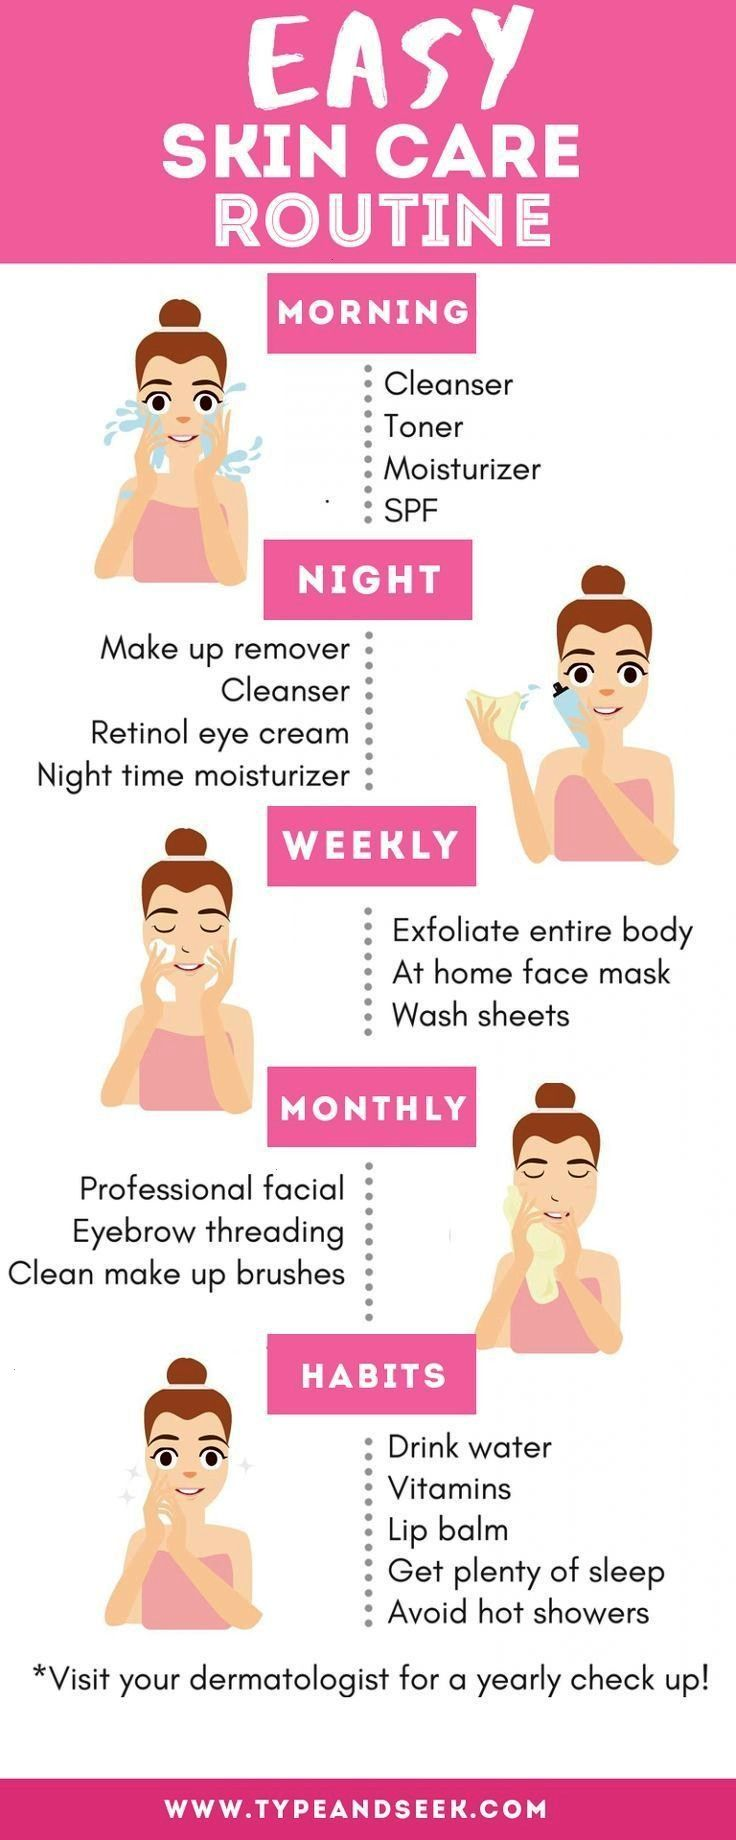 Skin Care Routine That Works WondersEasy Skin Care Routine That Works Wonders Best skin care routines and how to keep your skin looking its best Taking Care Of Yourself P...